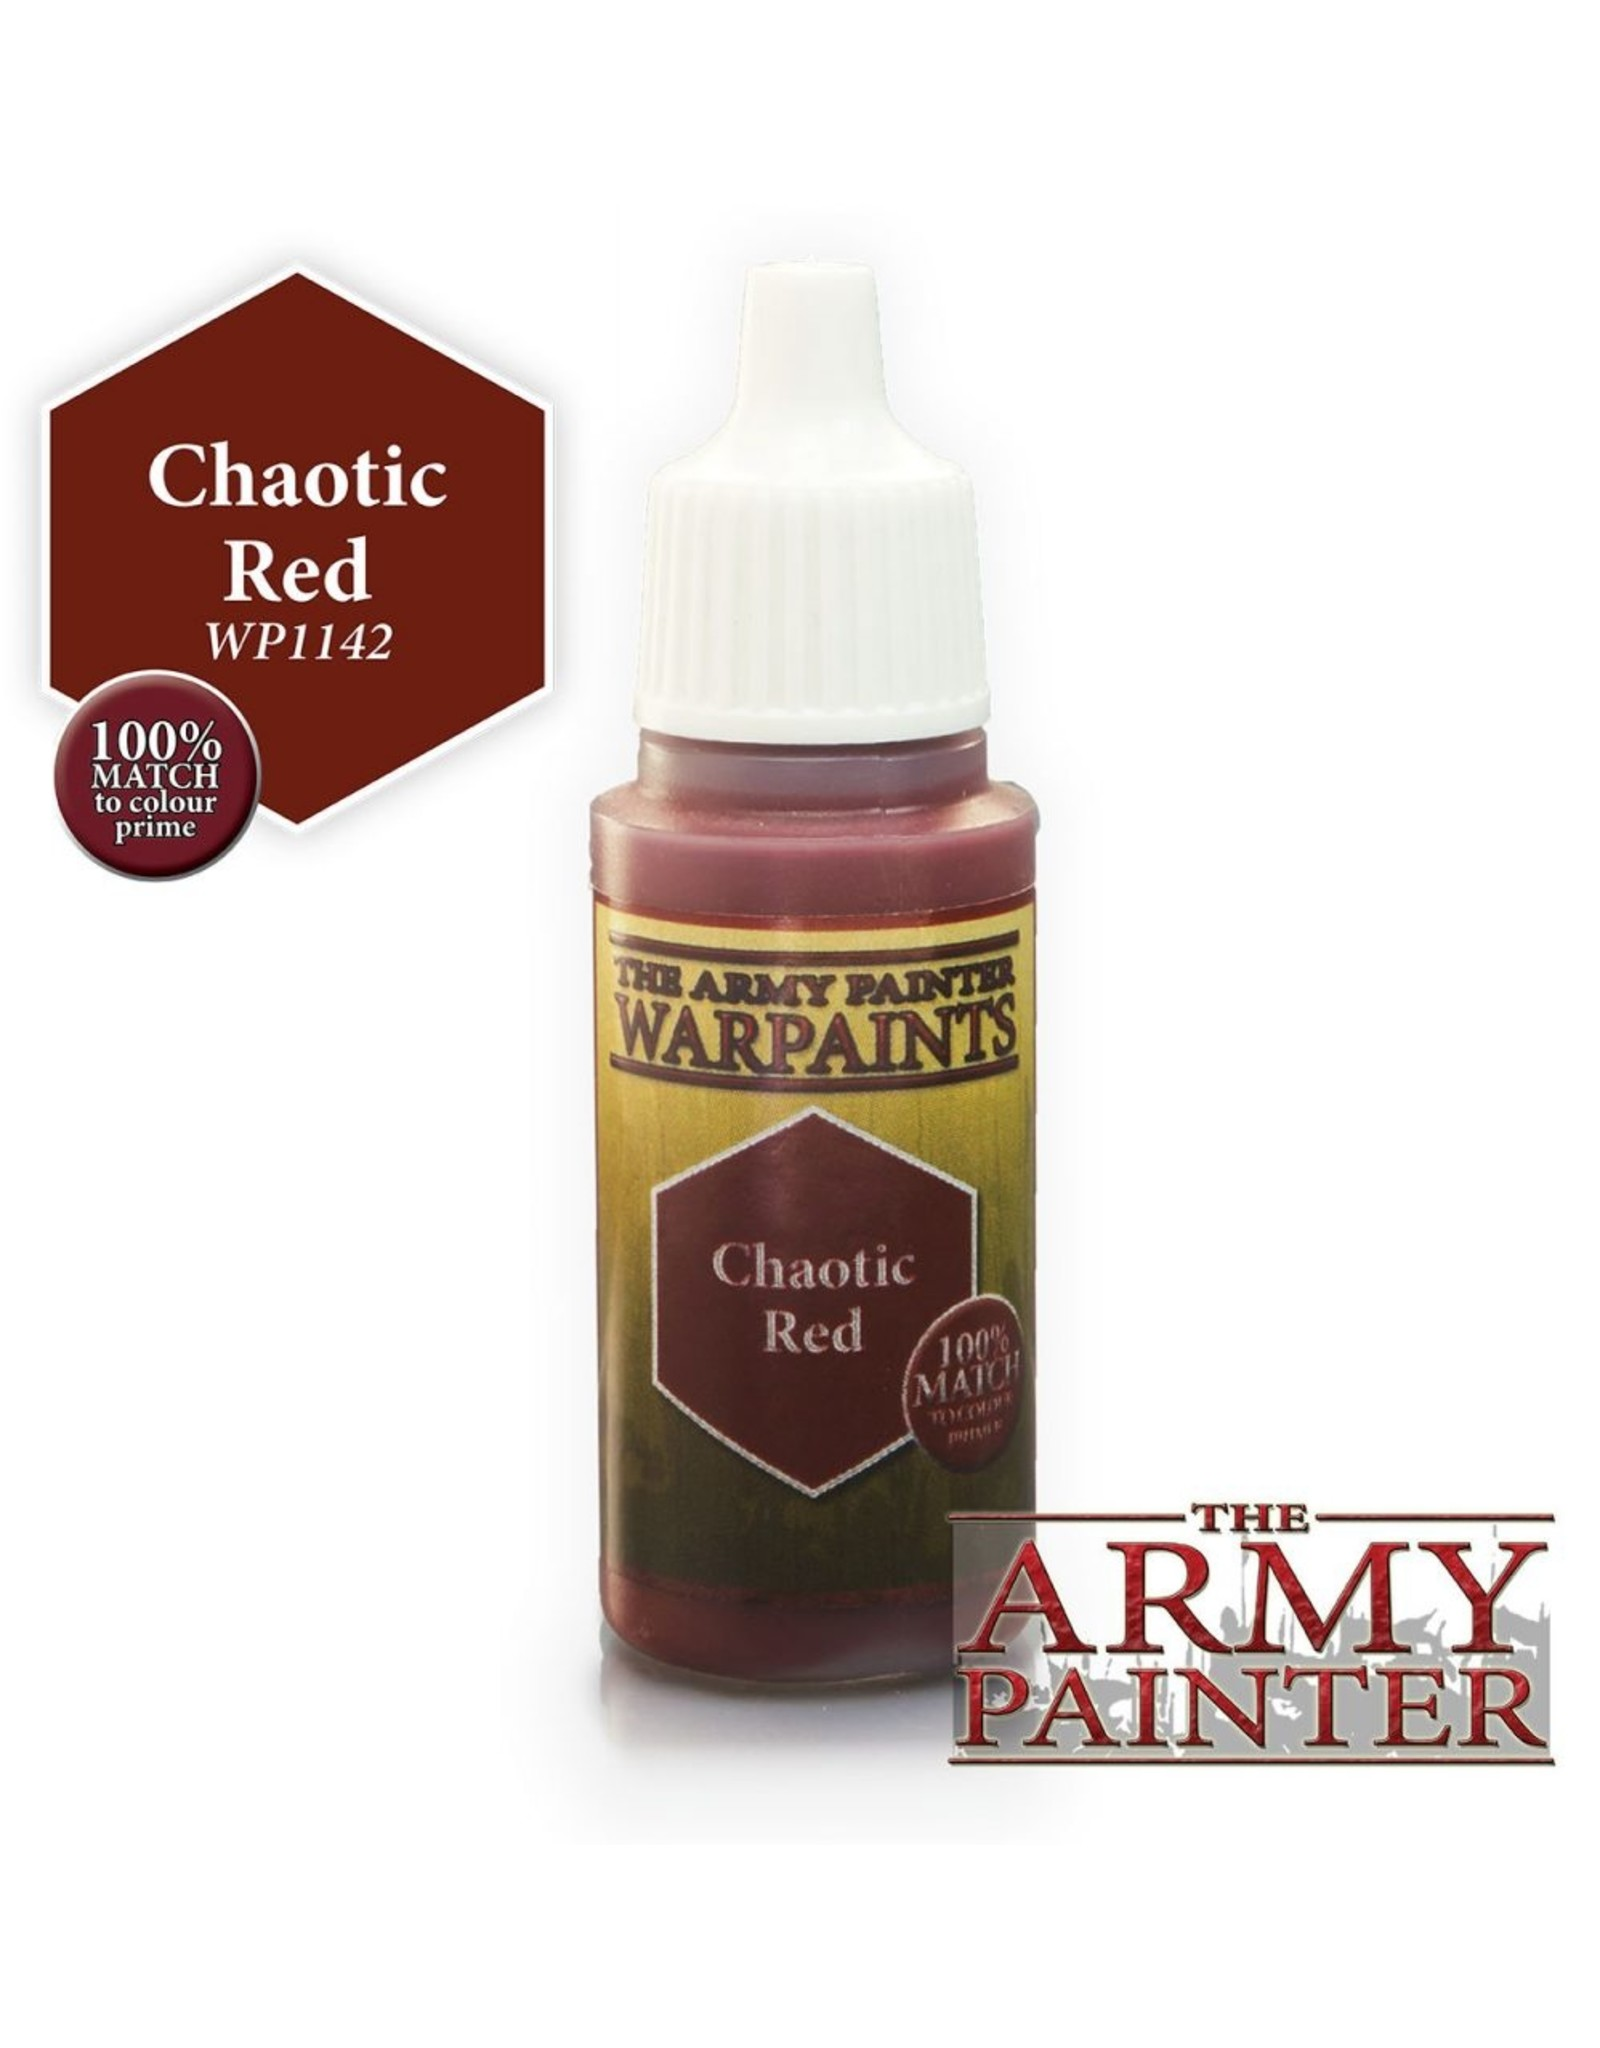 THE ARMY PAINTER ARMY PAINTER WARPAINTS CHAOTIC RED